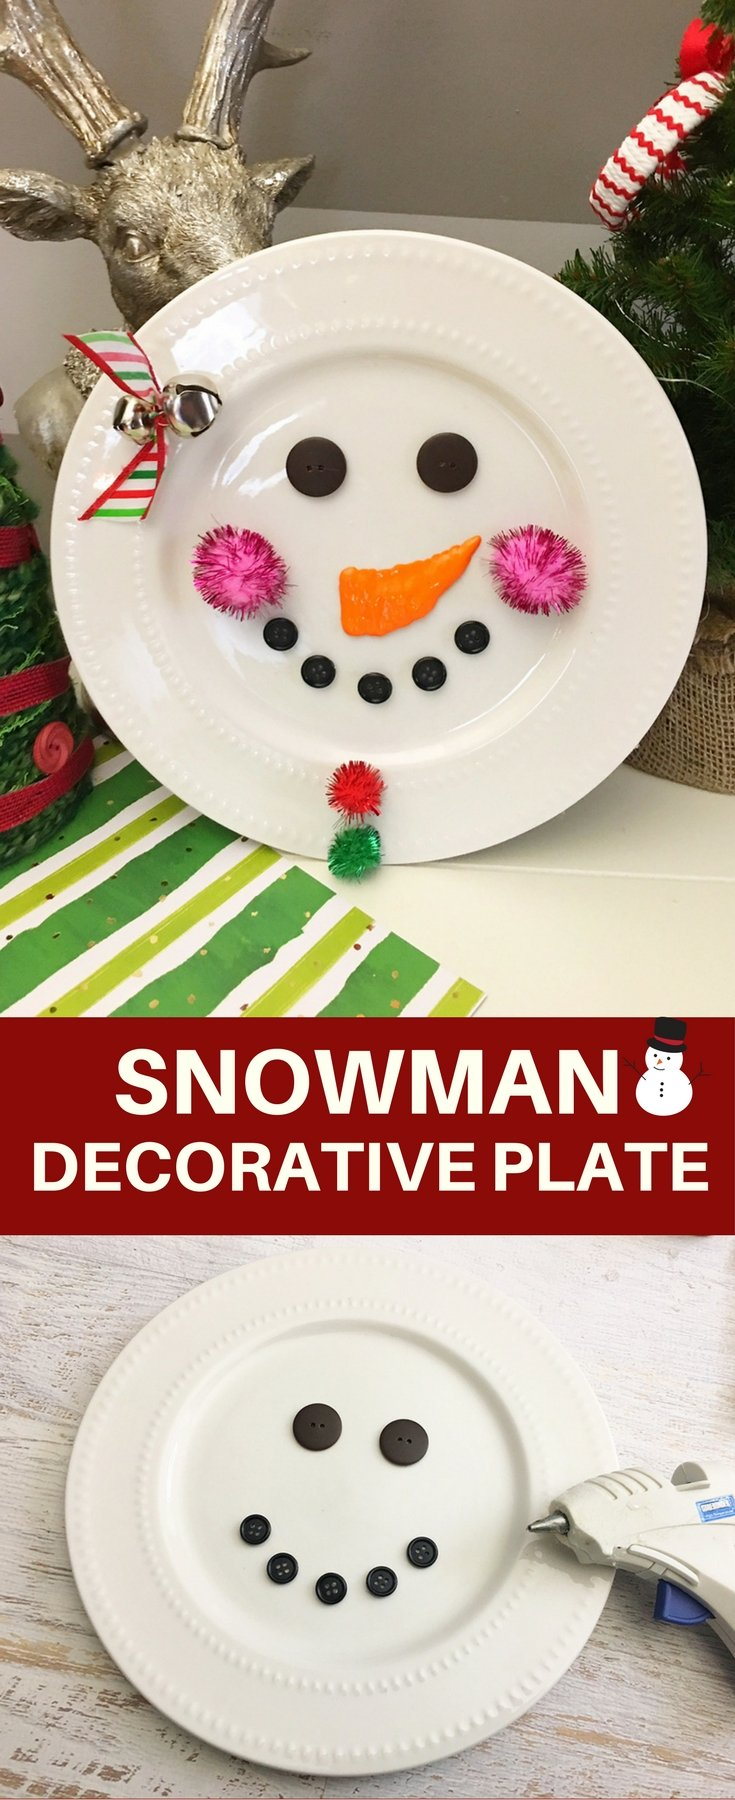 DIY Snowman Decorative Plate is an adorable addition to any Christmas decor! So easy and fun to make with simple supplies from the Dollar Store!